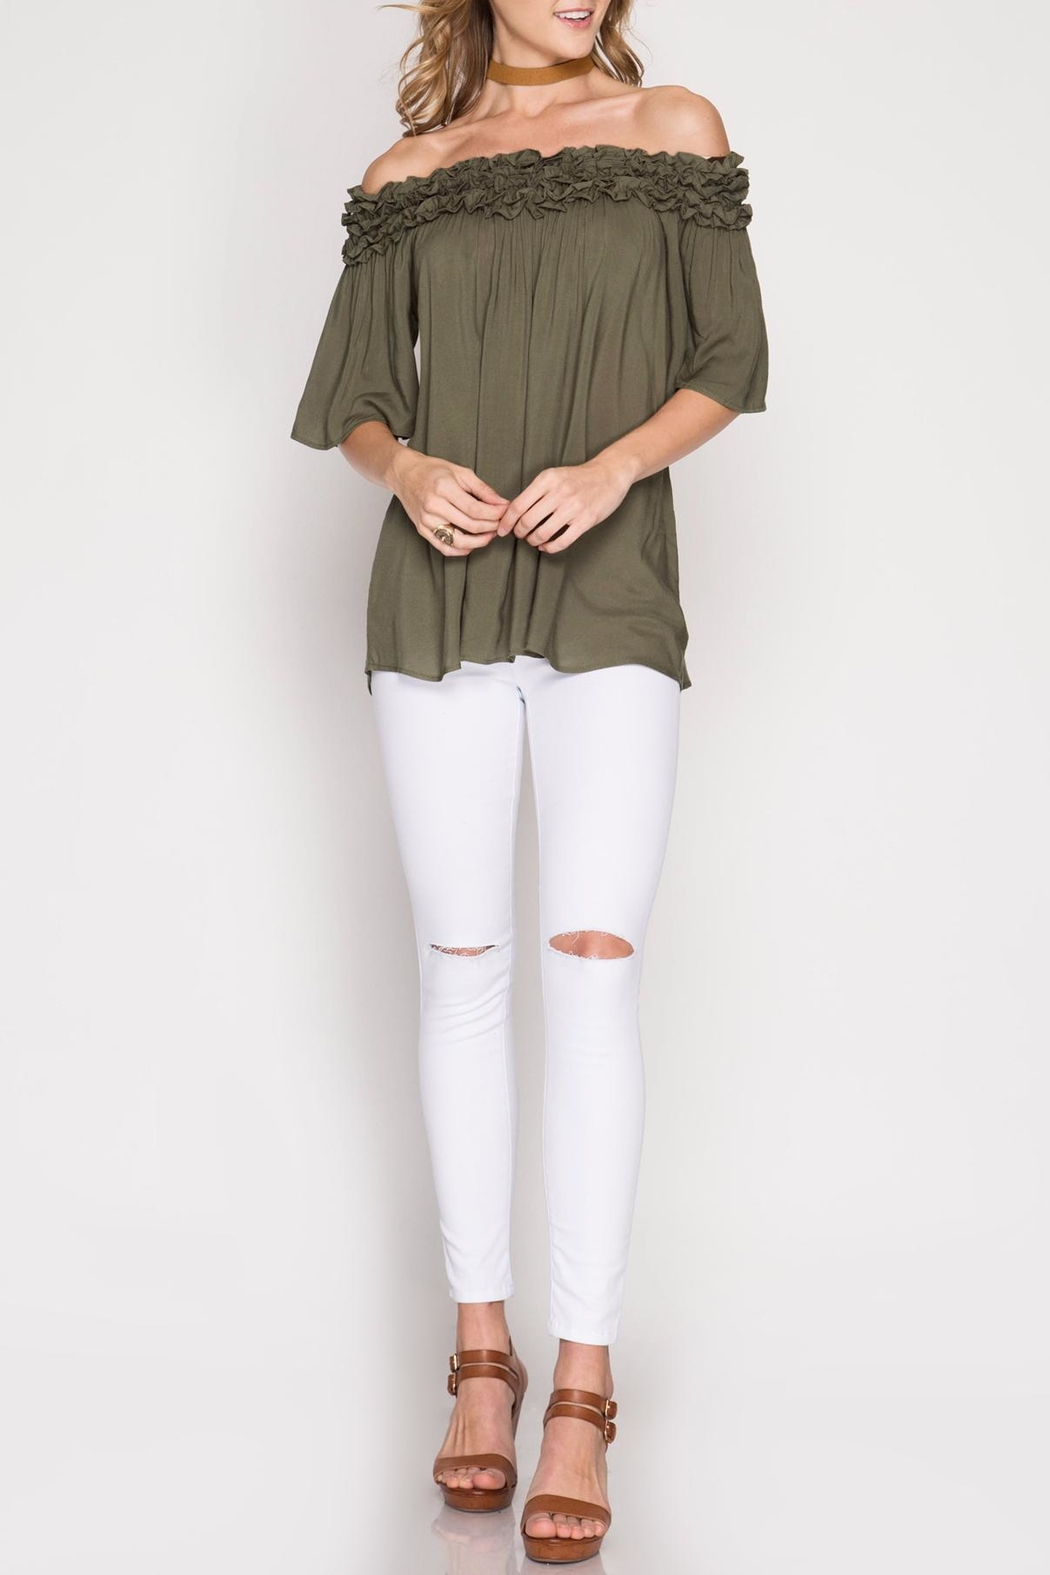 She + Sky Olive Off-The-Shoulder Top - Main Image